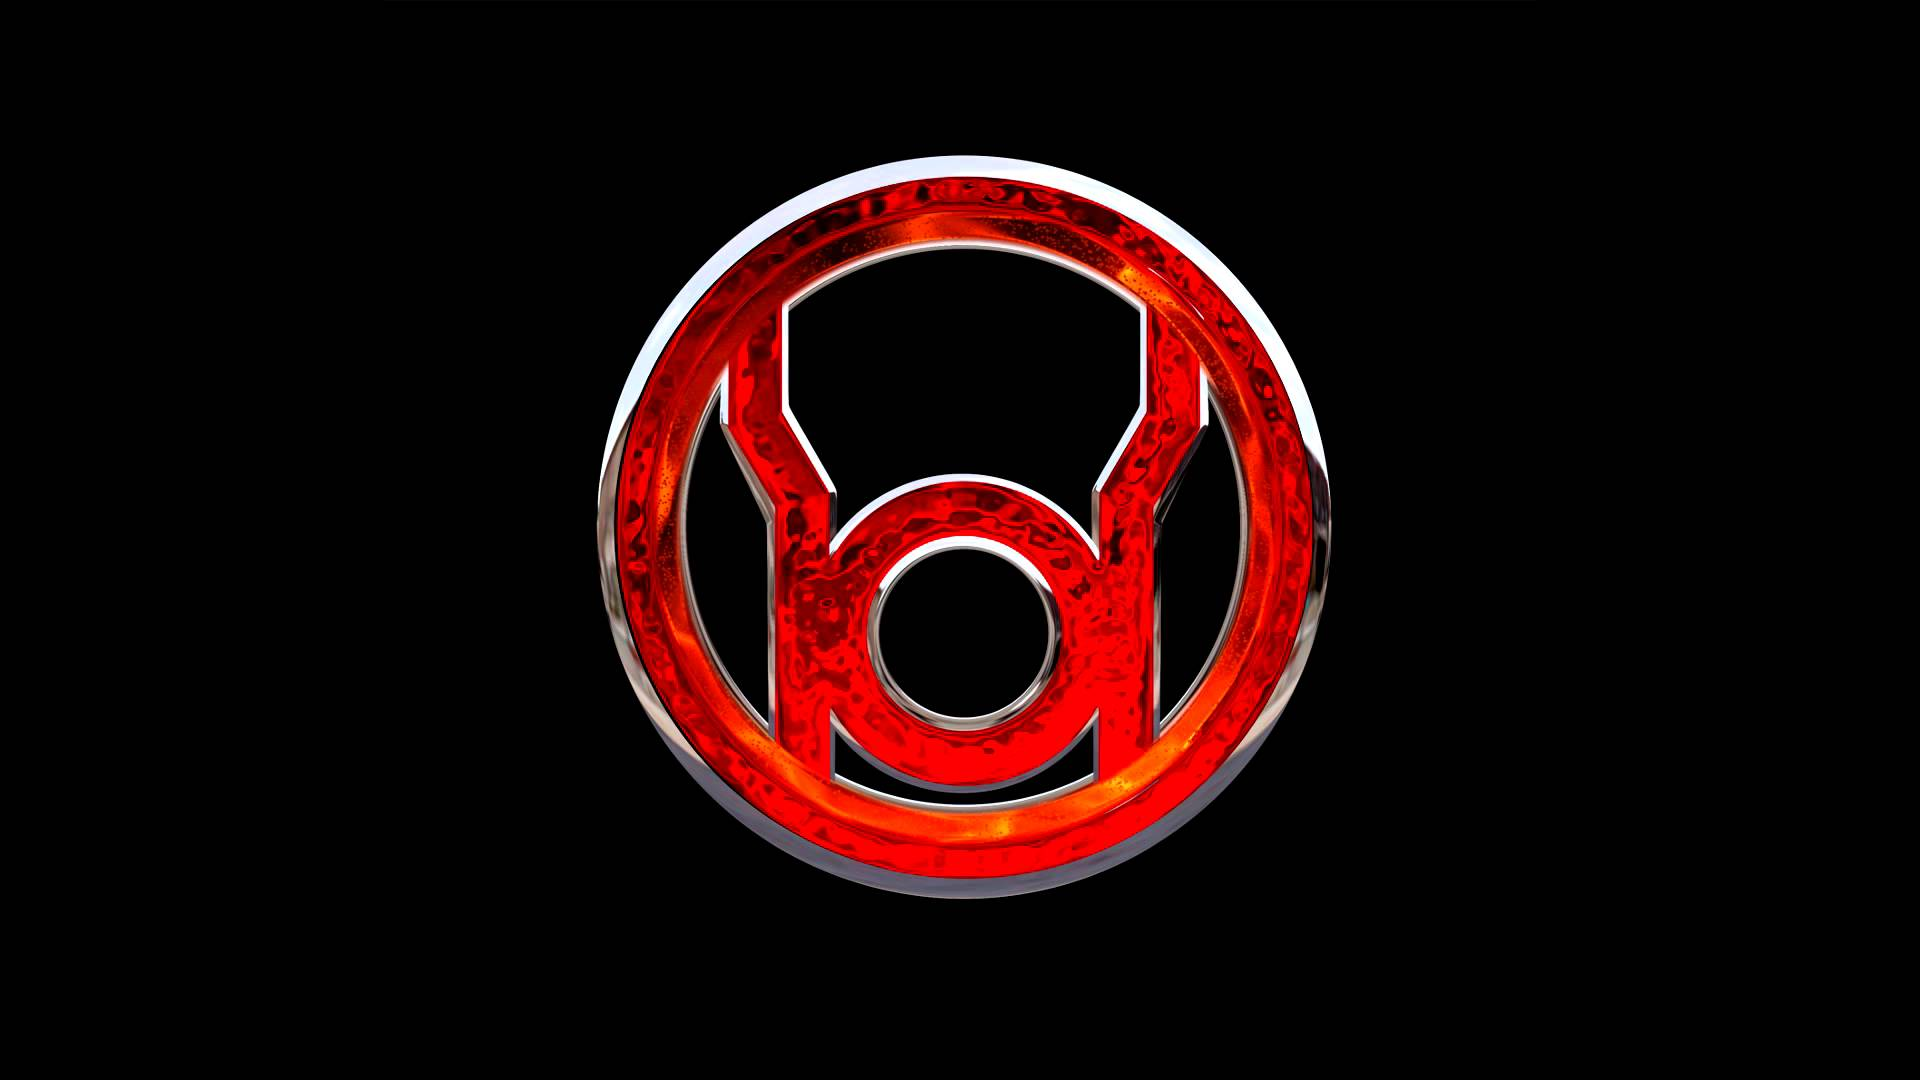 Red lantern corps symbol wallpaper - photo#13